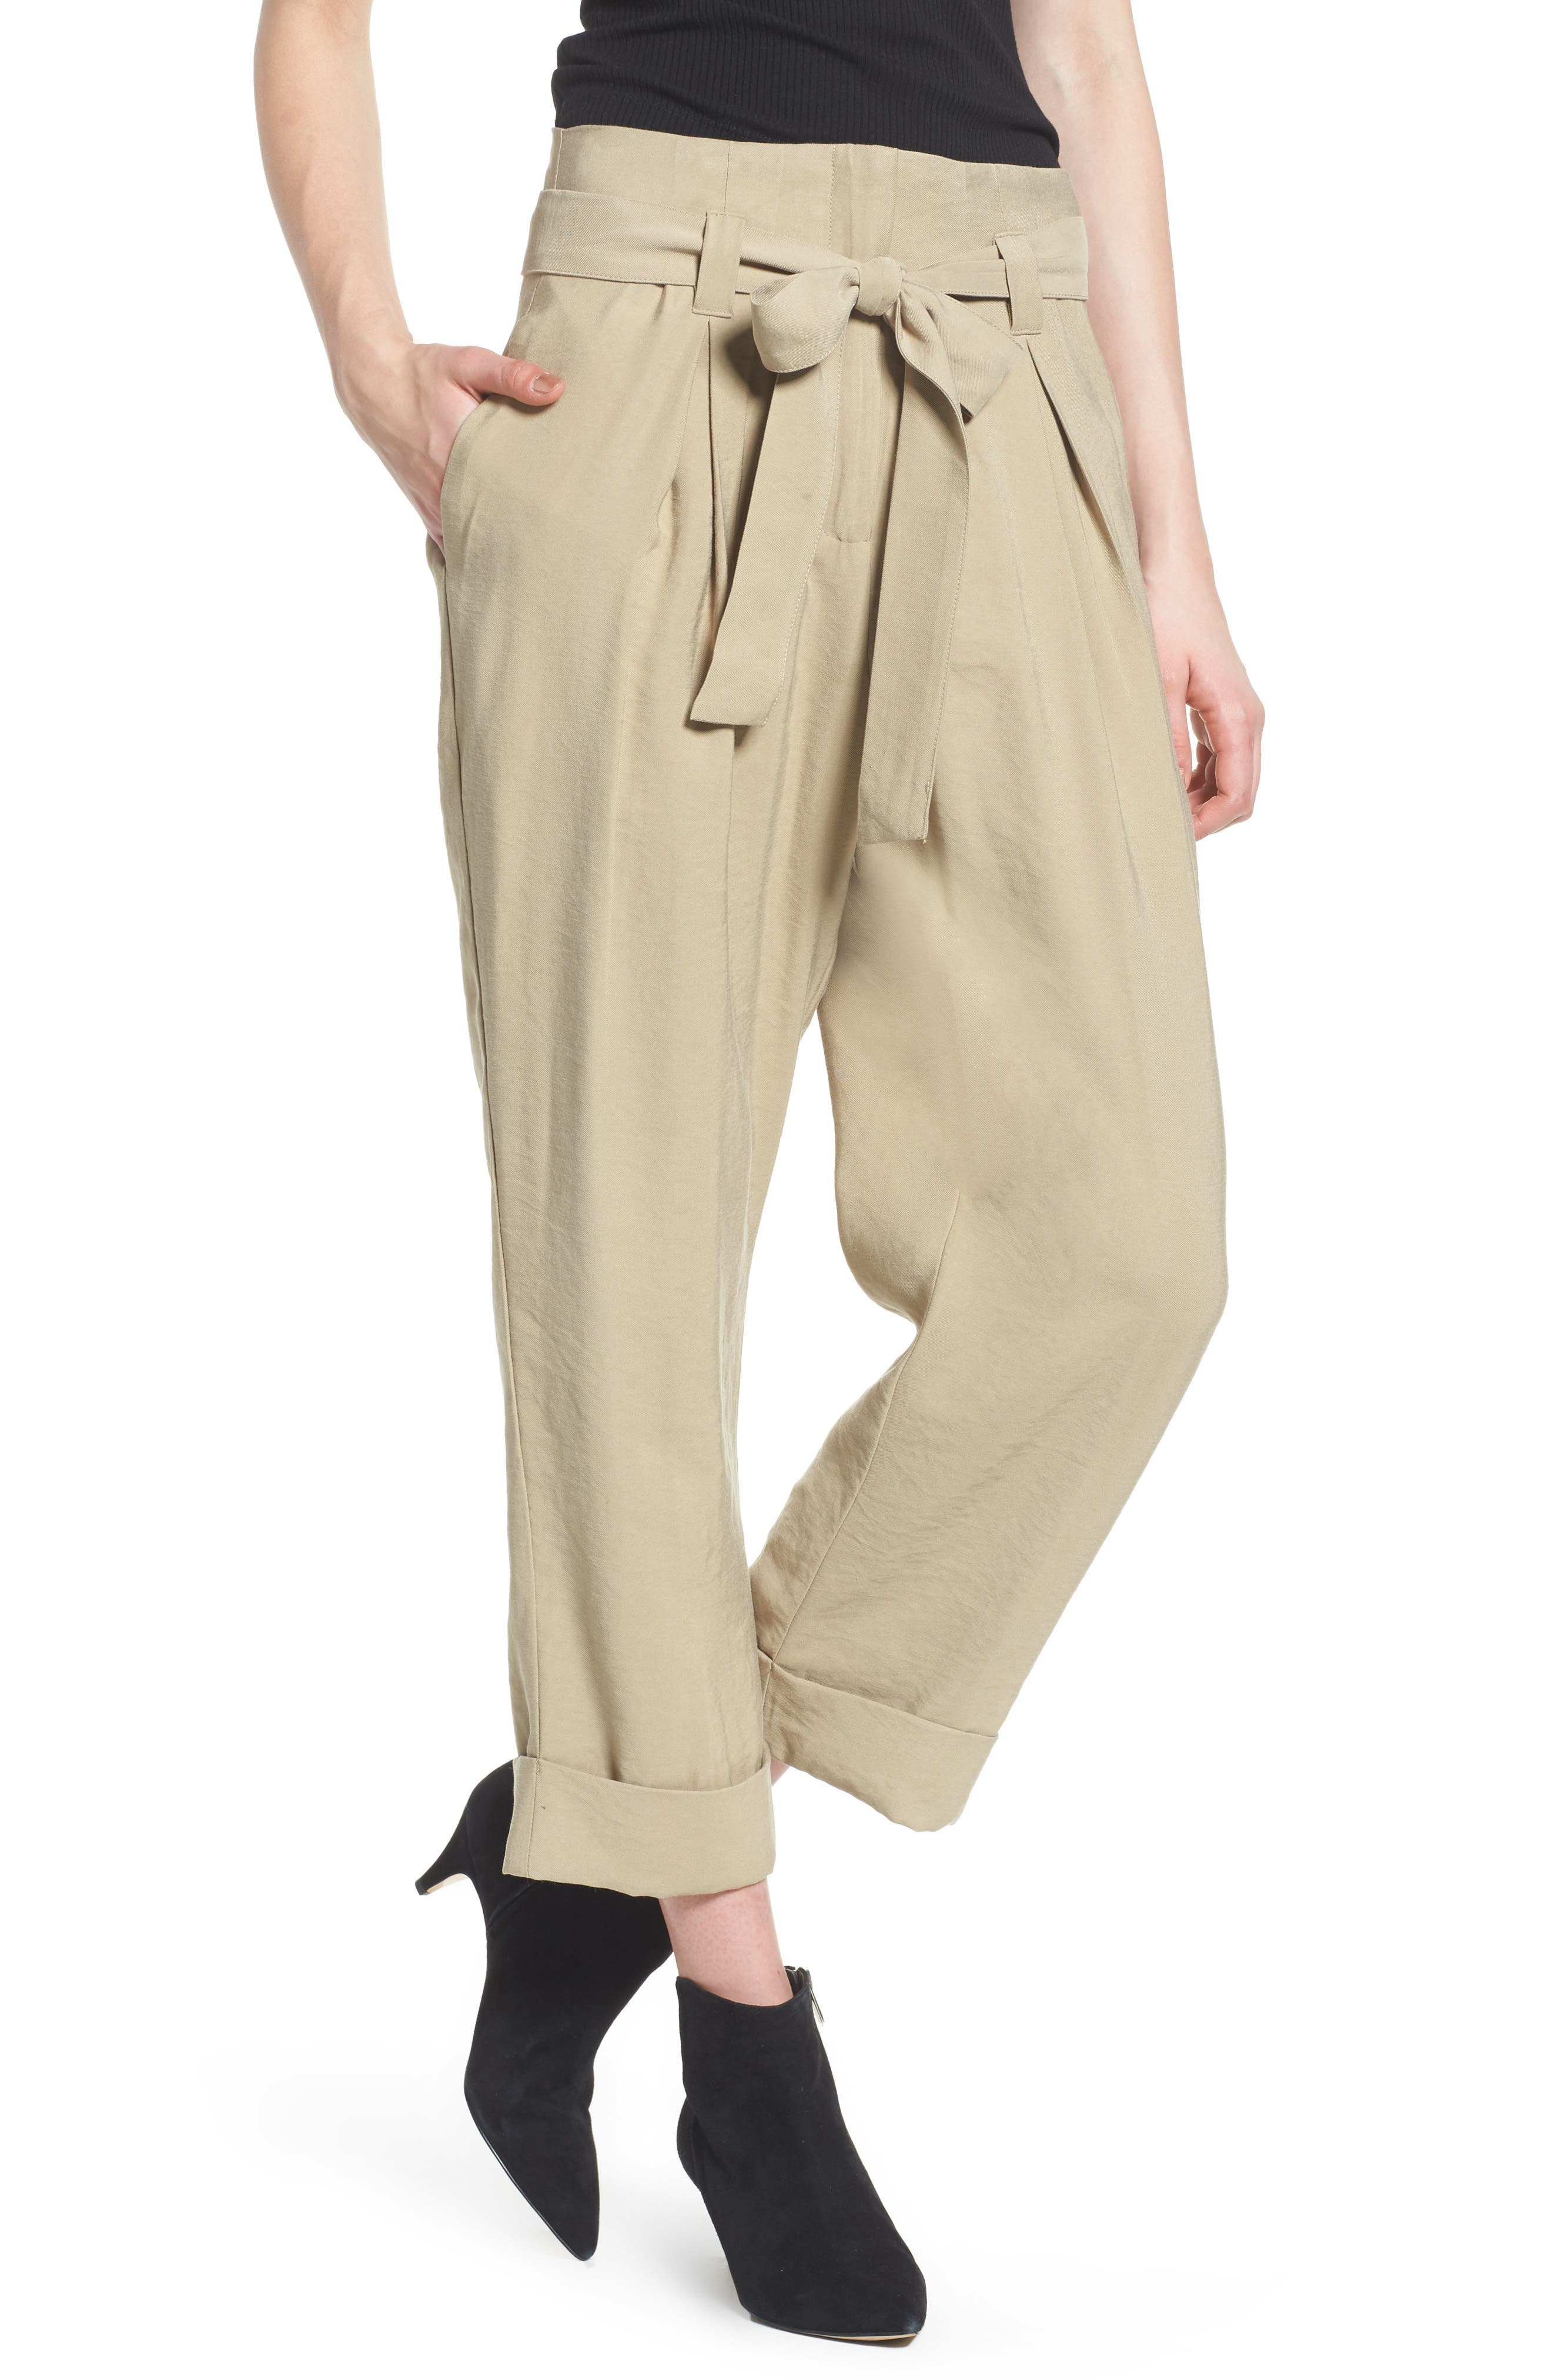 J.O.A. High Waist Tie Front Cropped Pants